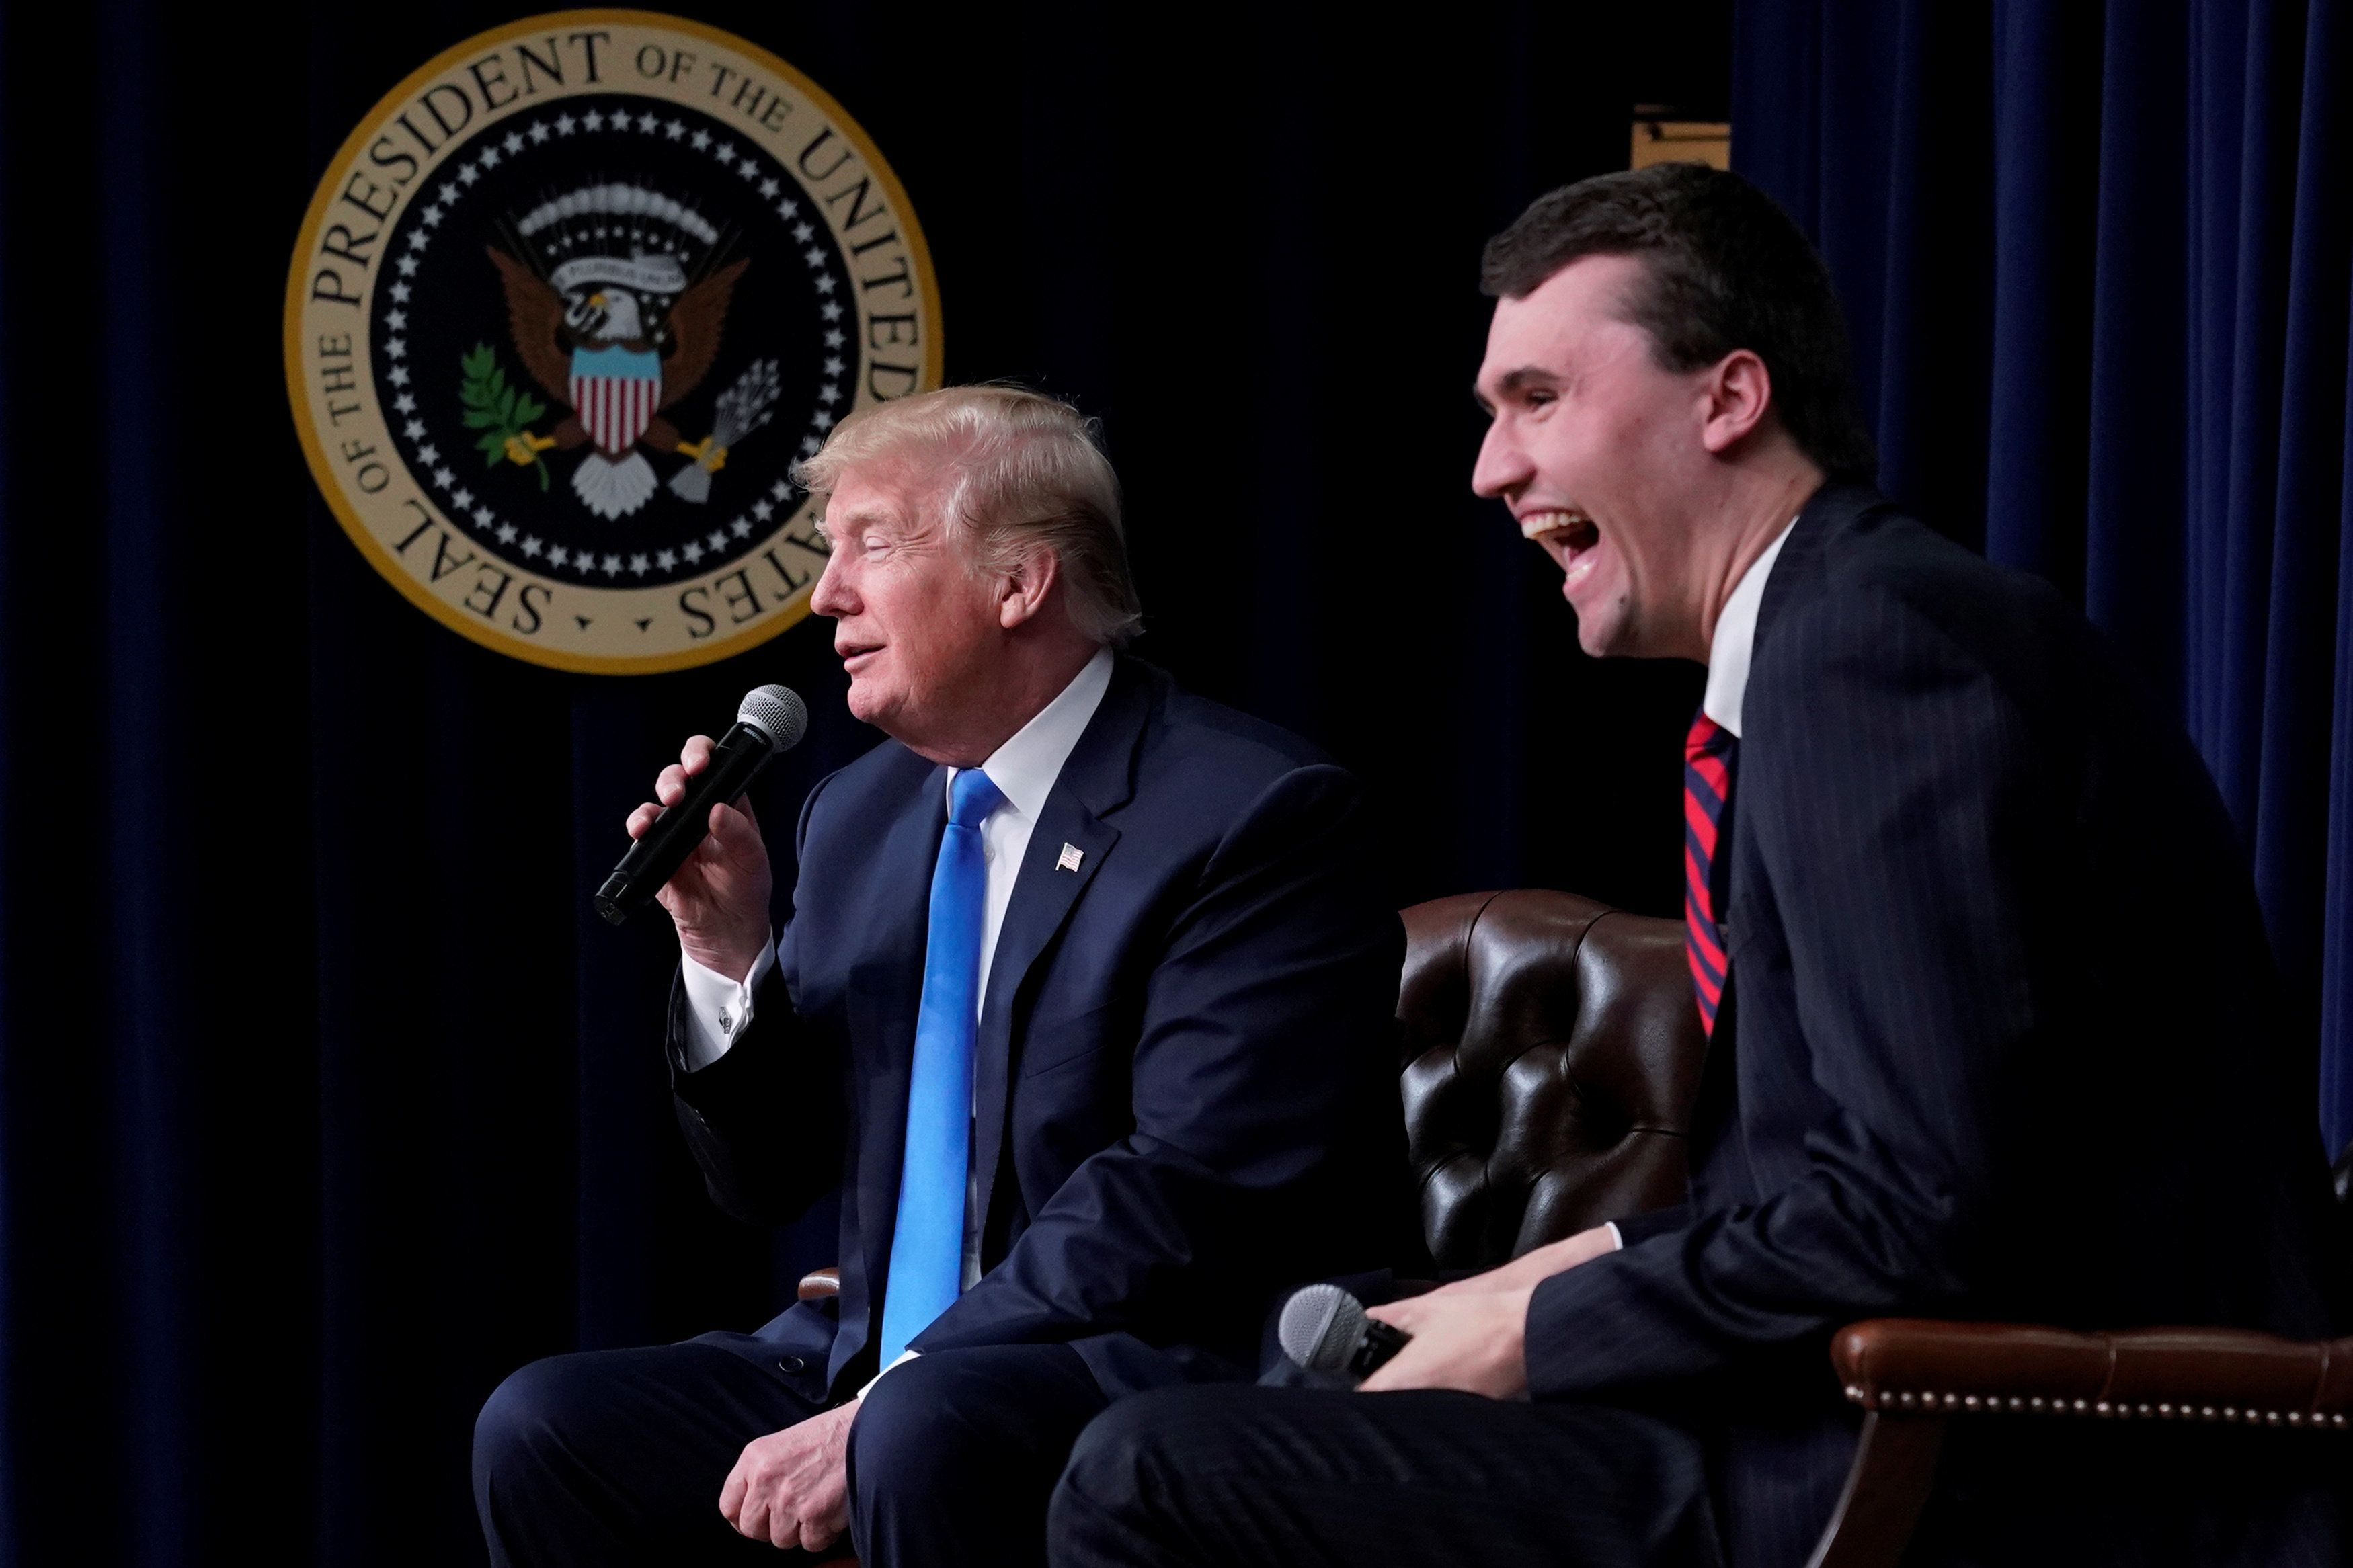 Charlie Kirk, founder of Turning Point USA, laughs after U.S. President Donald Trump said that if he could go back in time and give himself advice at age 25 it would be to not run for president, during a youth forum titled Generation Next, at the White House in Washington, U.S. March 22, 2018.  REUTERS/Jonathan Ernst